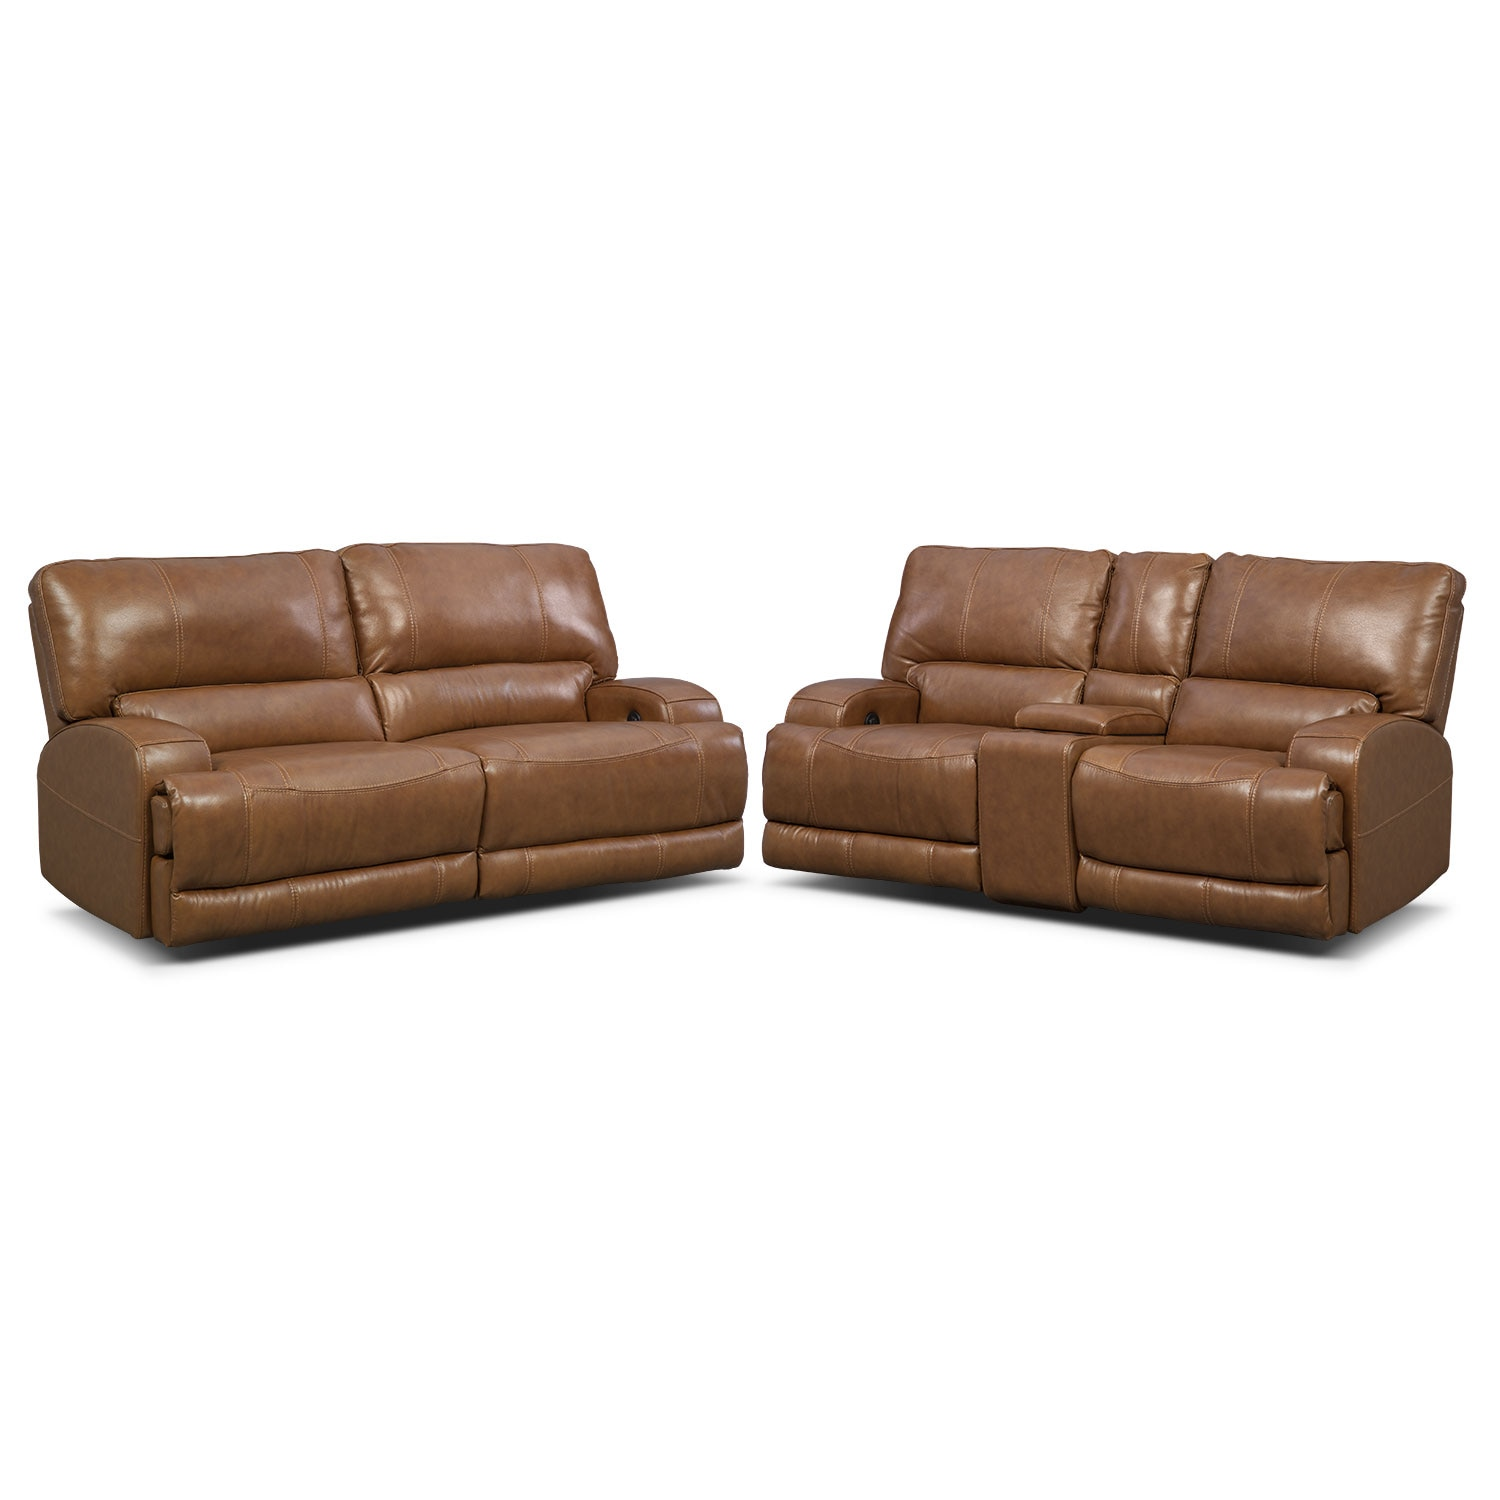 Barton Power Reclining Sofa and Reclining Loveseat Set - Camel